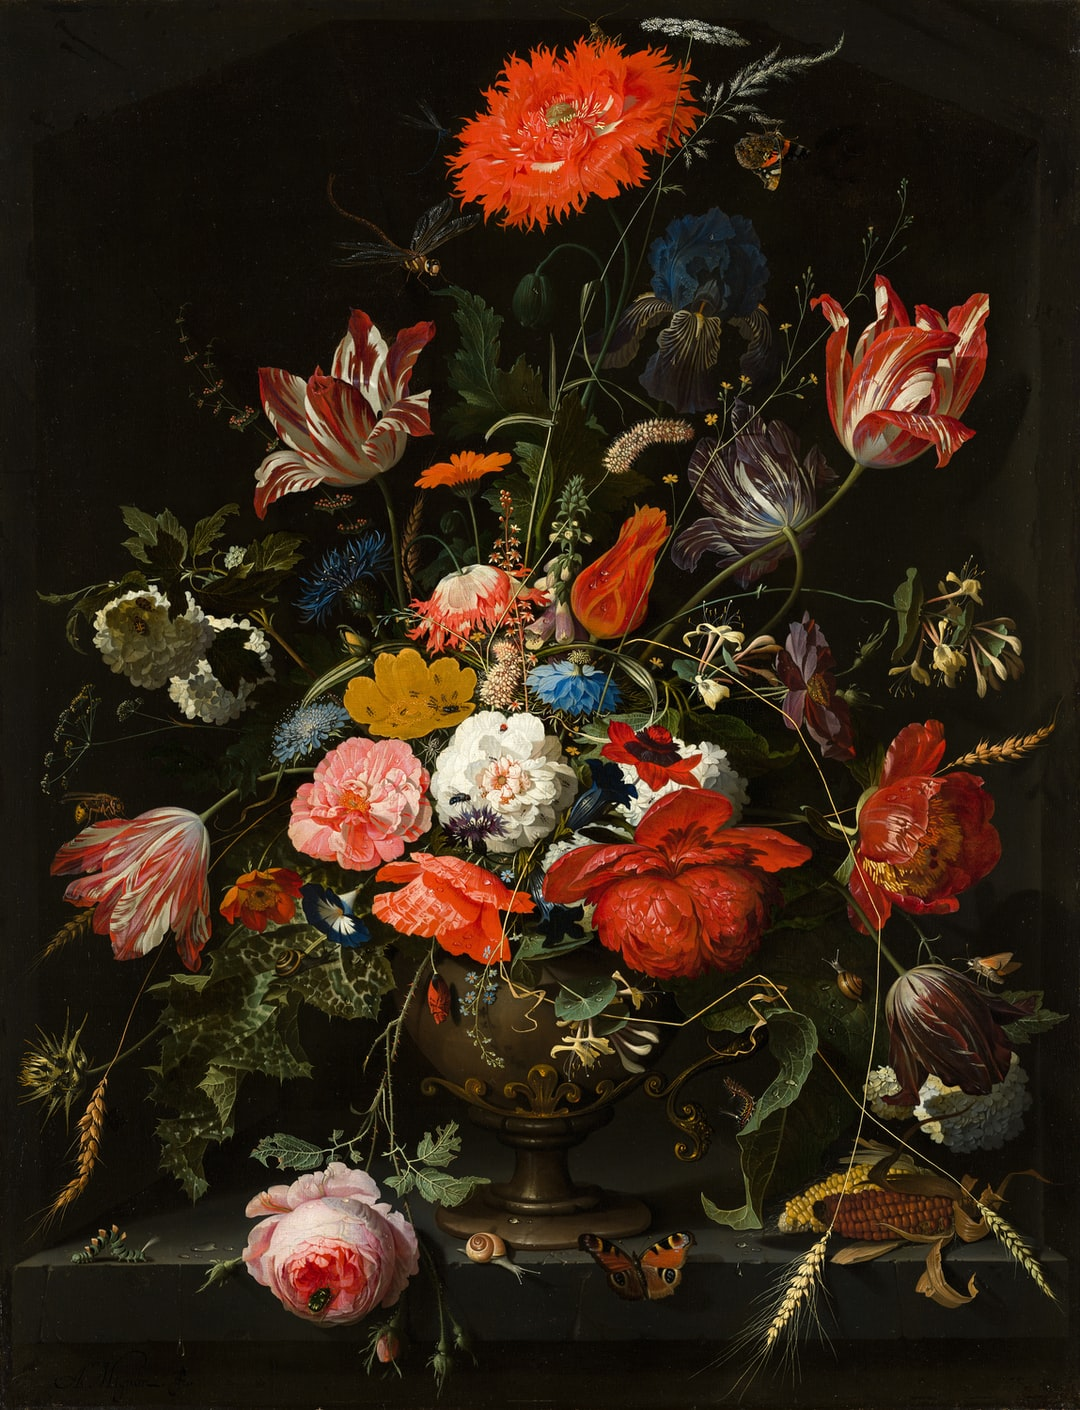 Flowers in a Metal Vase. Creator: Abraham Mignon. Date:1670. Institution: Mauritshuis. Provider: Digitale Collectie. Providing Country: Netherlands. PD for Public Domain Mark